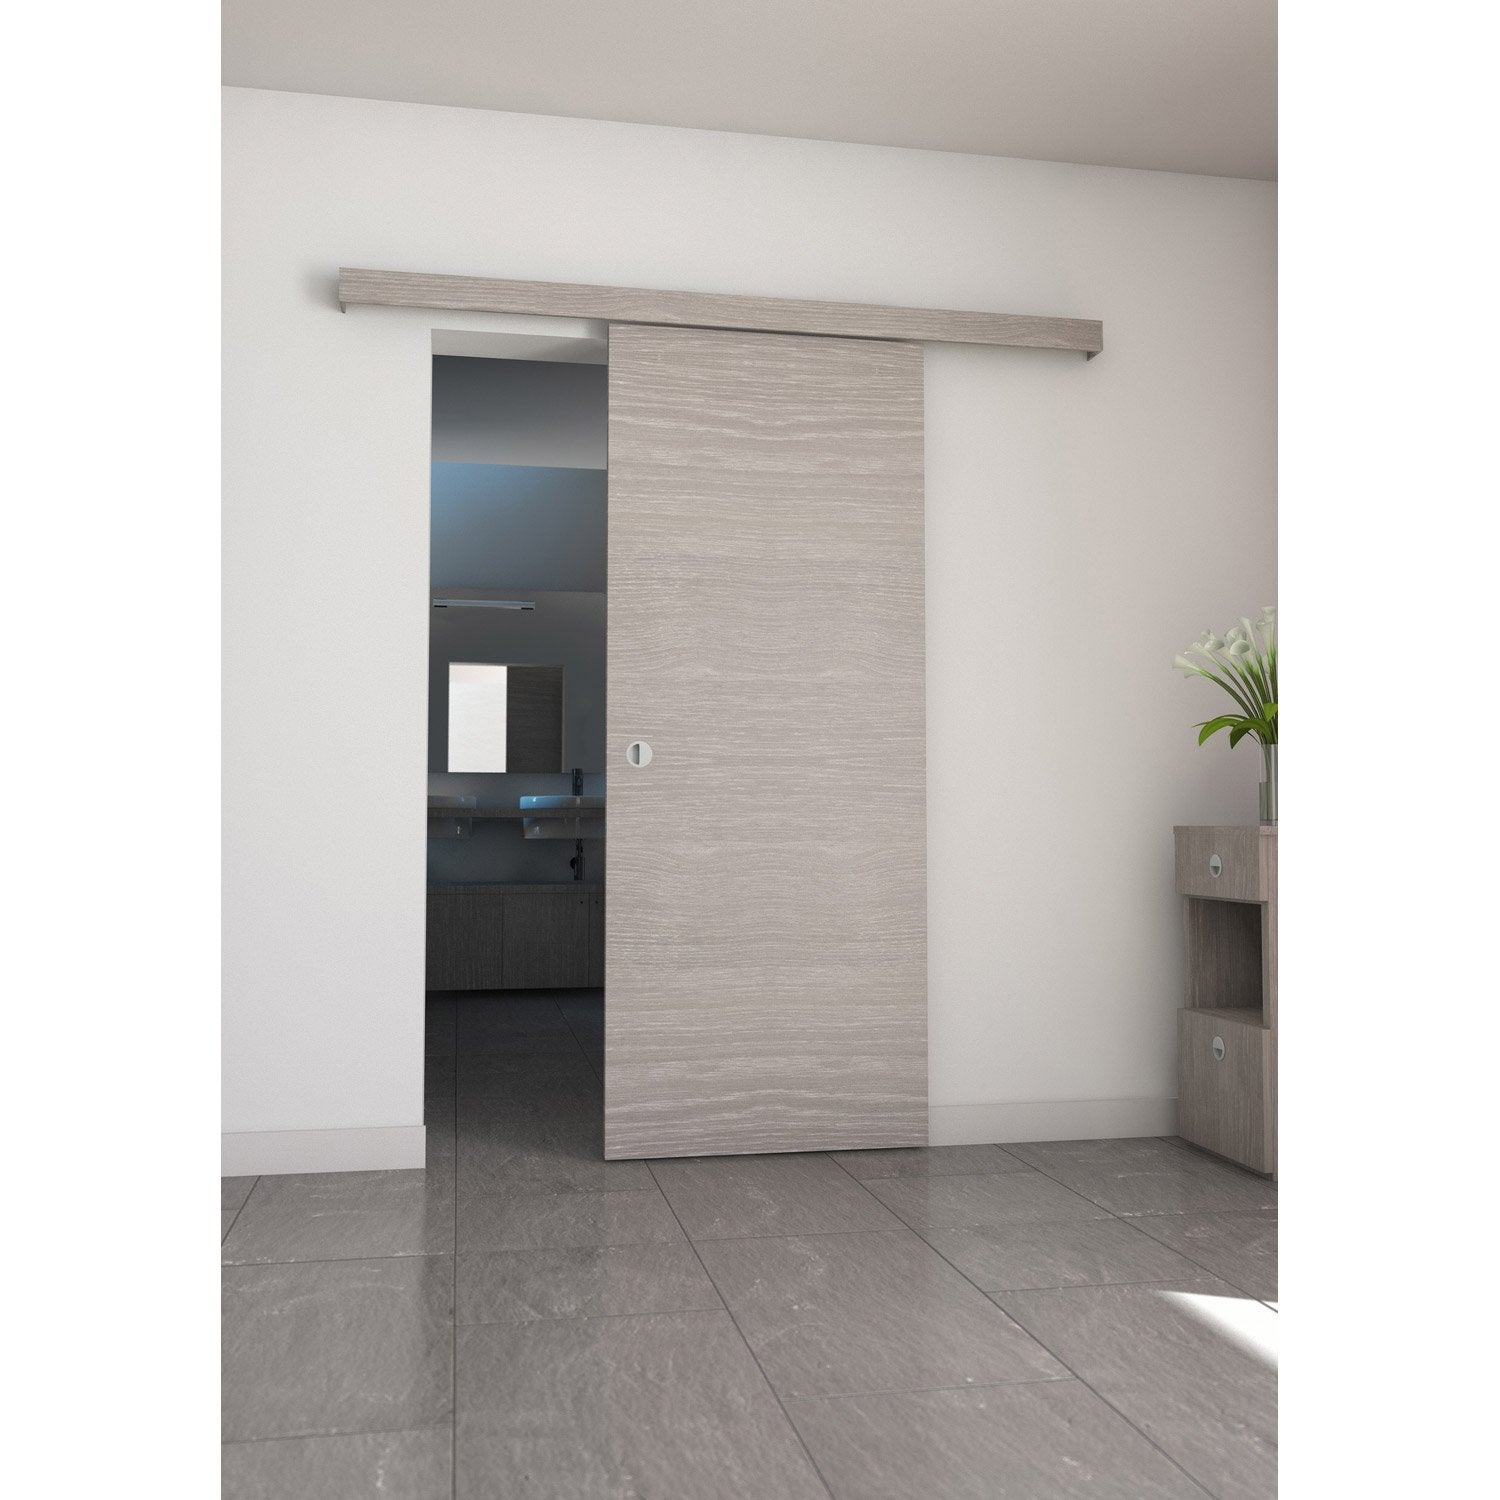 Ensemble porte coulissante coulicool mdf rev tu aluminium for Porte salle de bain leroy merlin